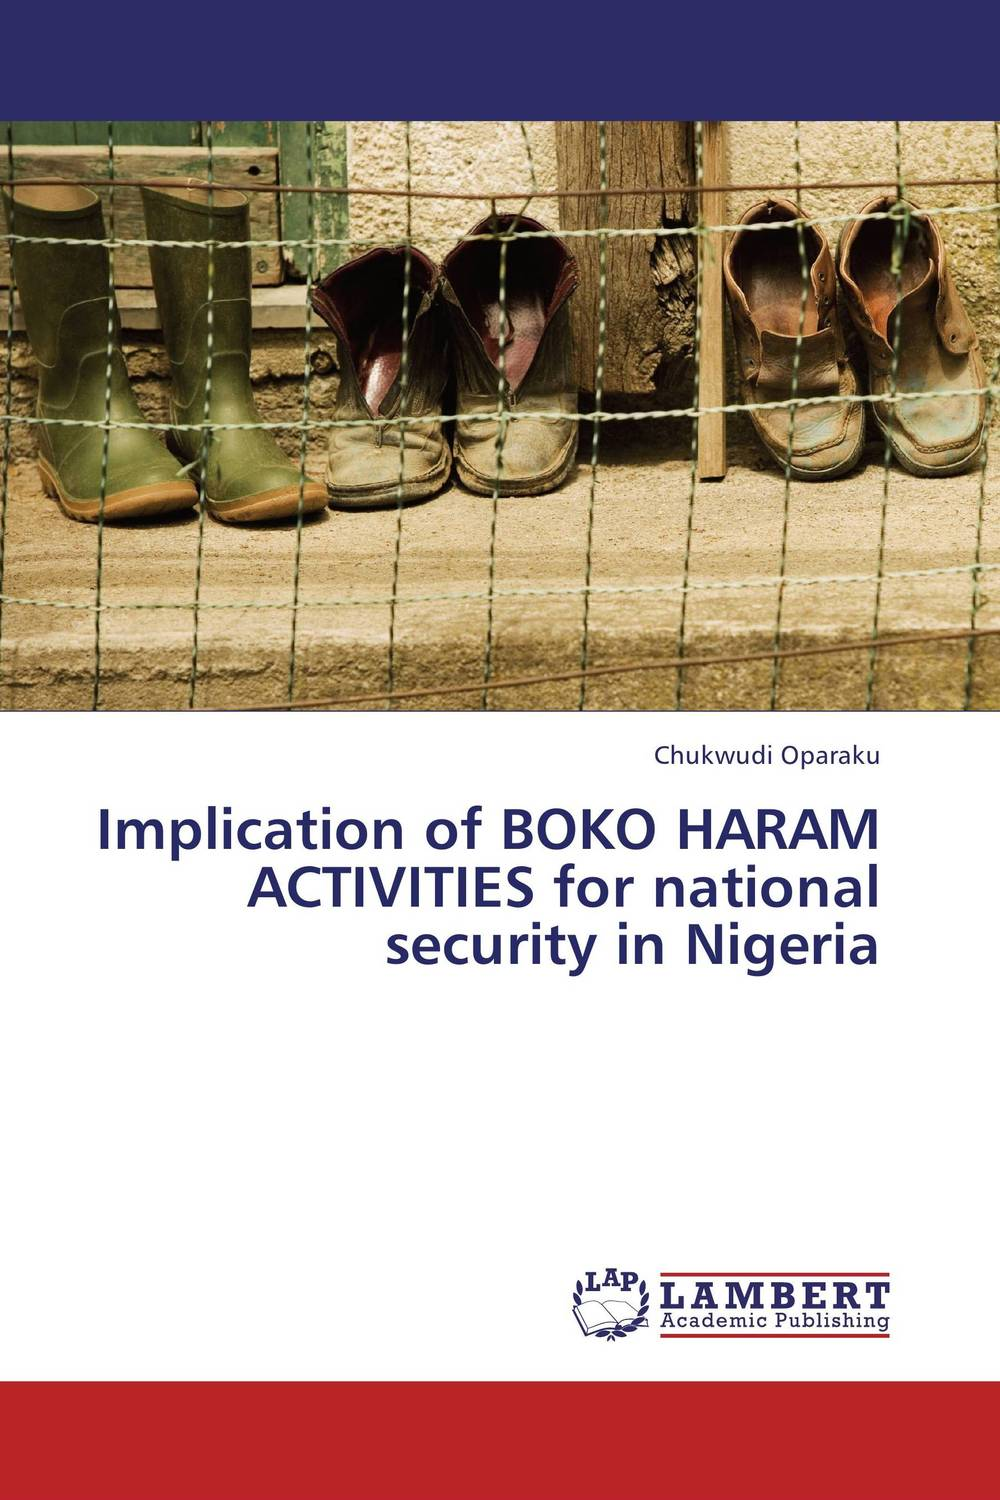 Implication of BOKO HARAM ACTIVITIES for national security in Nigeria hira dhar chudali md hasrat ali and anju choudhury topographical implication on income and employment of nepalese people